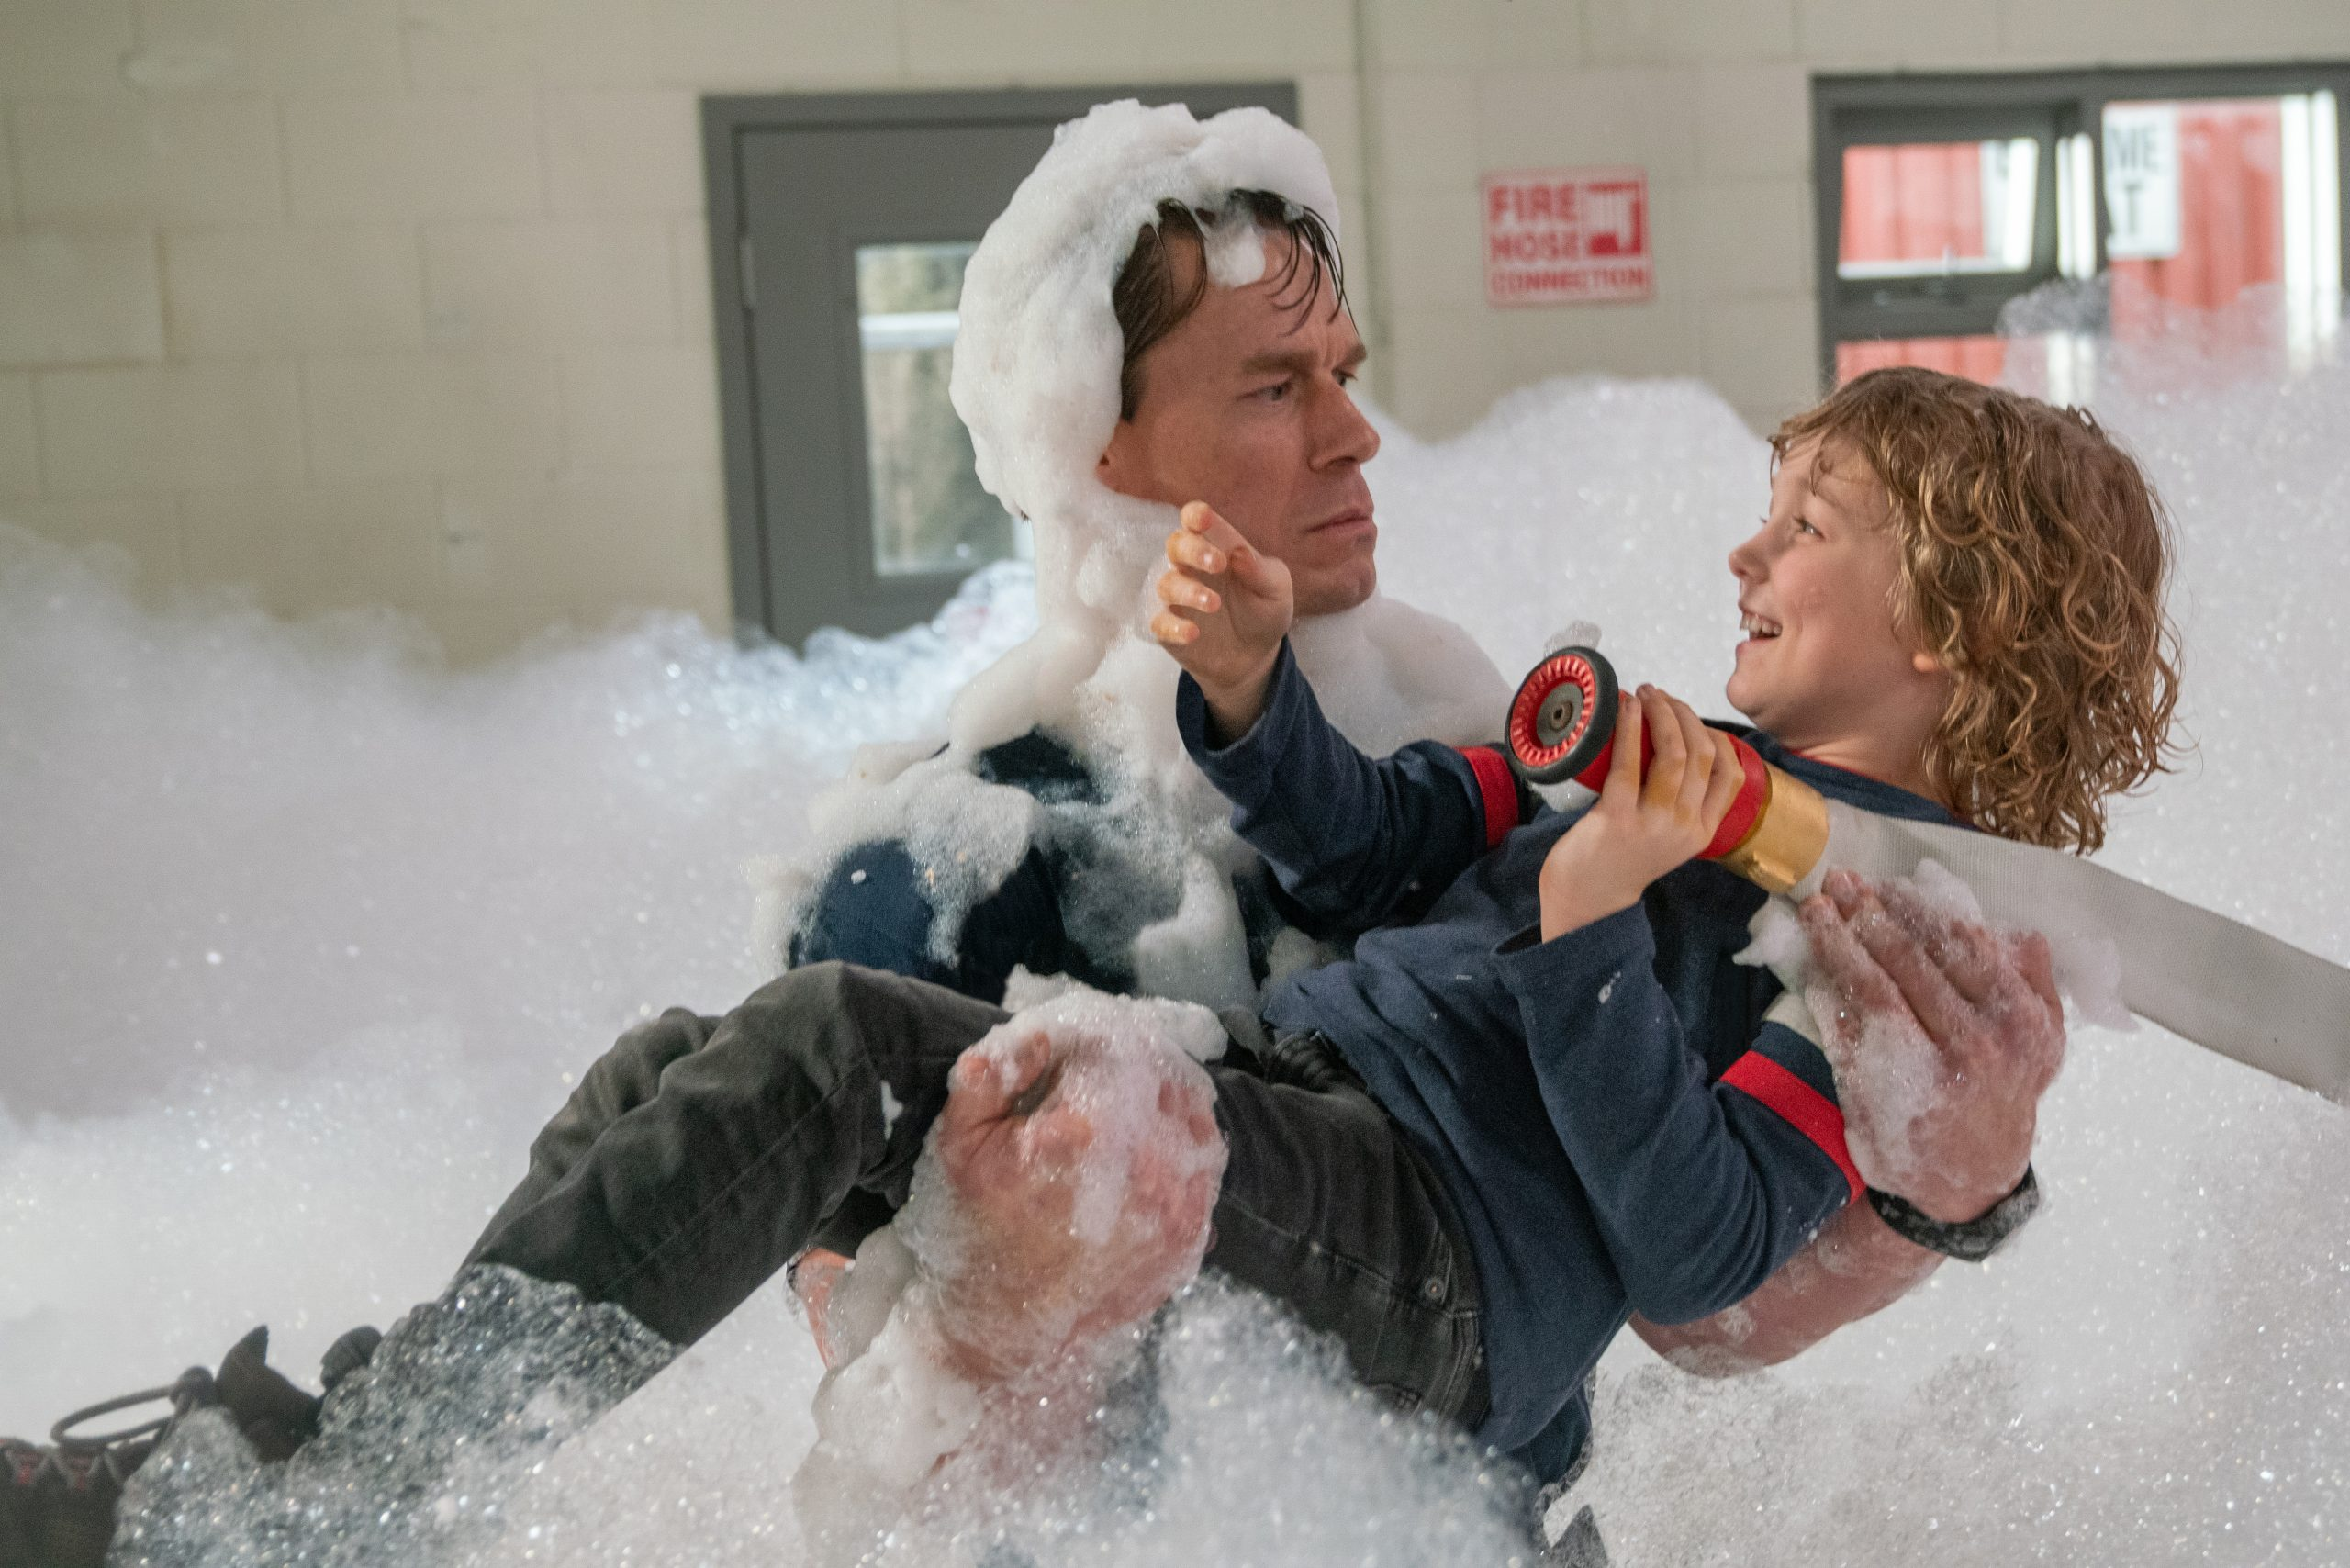 Playing with Fire starring John Cena, is a hilarious & heartwarming movie the whole family will love! Enter to win a family fun pack!